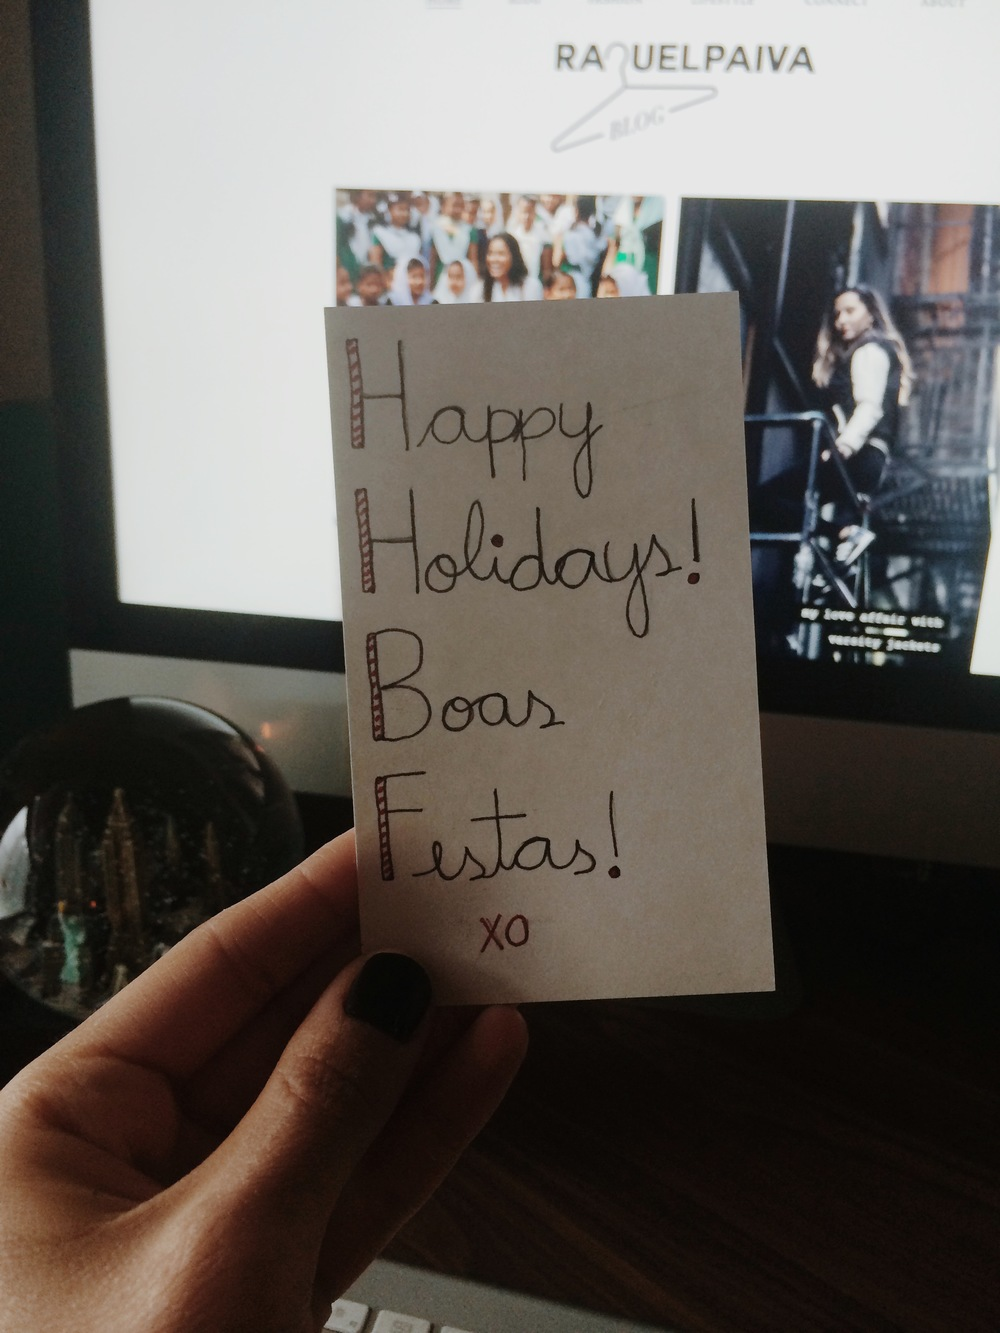 happy_holidays_boas_festas